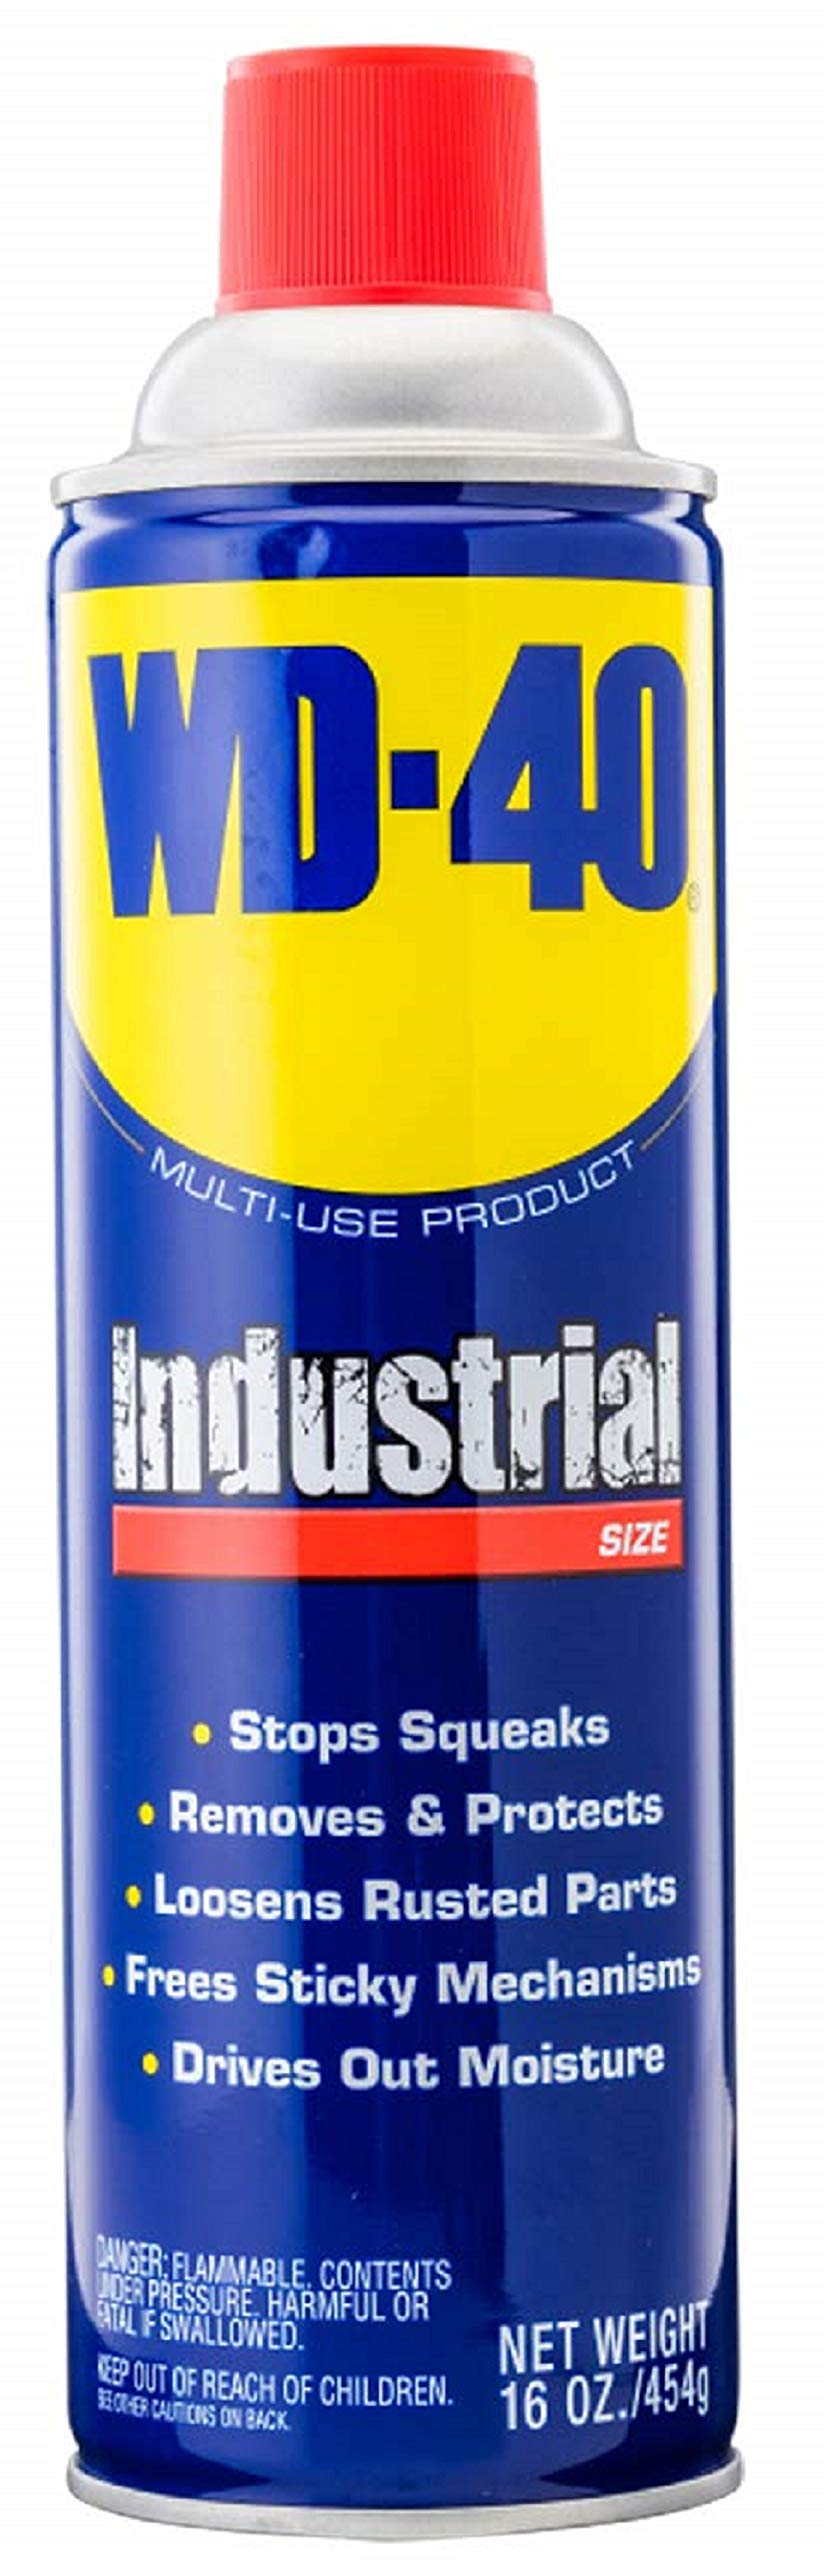 WD-40 490081 Multi-Use Lubricant Product Spray 16 OZ (Pack of 1)